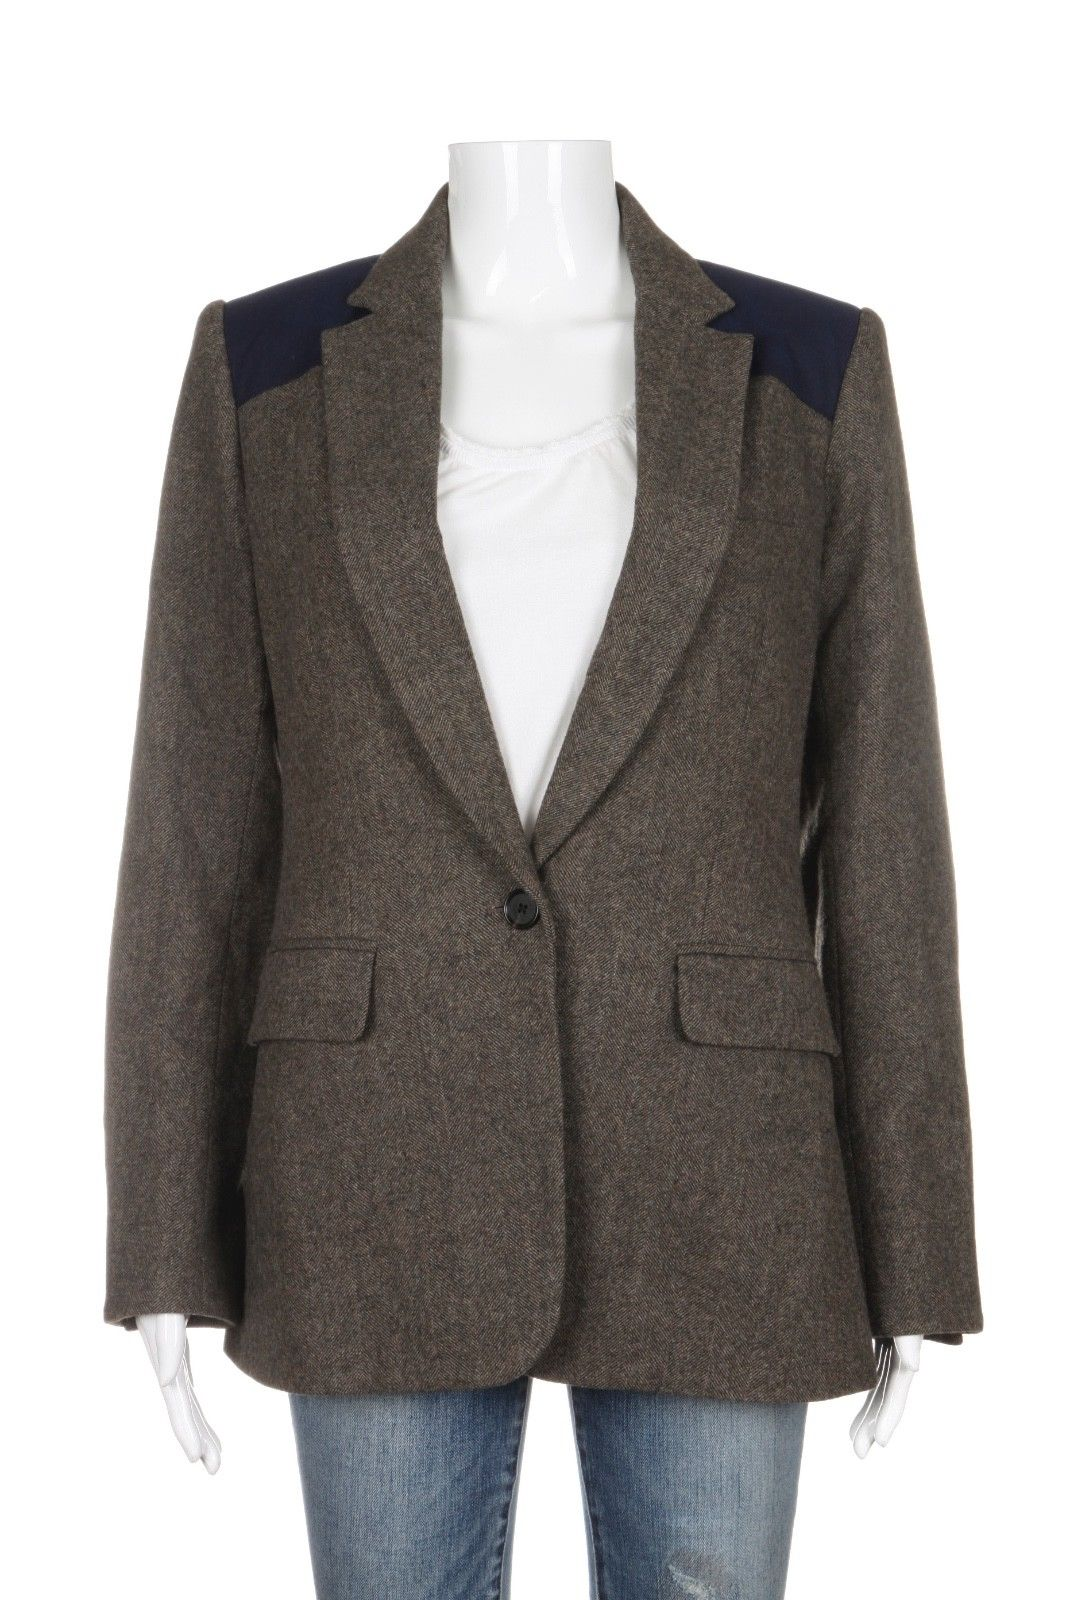 VERONICA BEARD Wool Blend Blazer Size 6